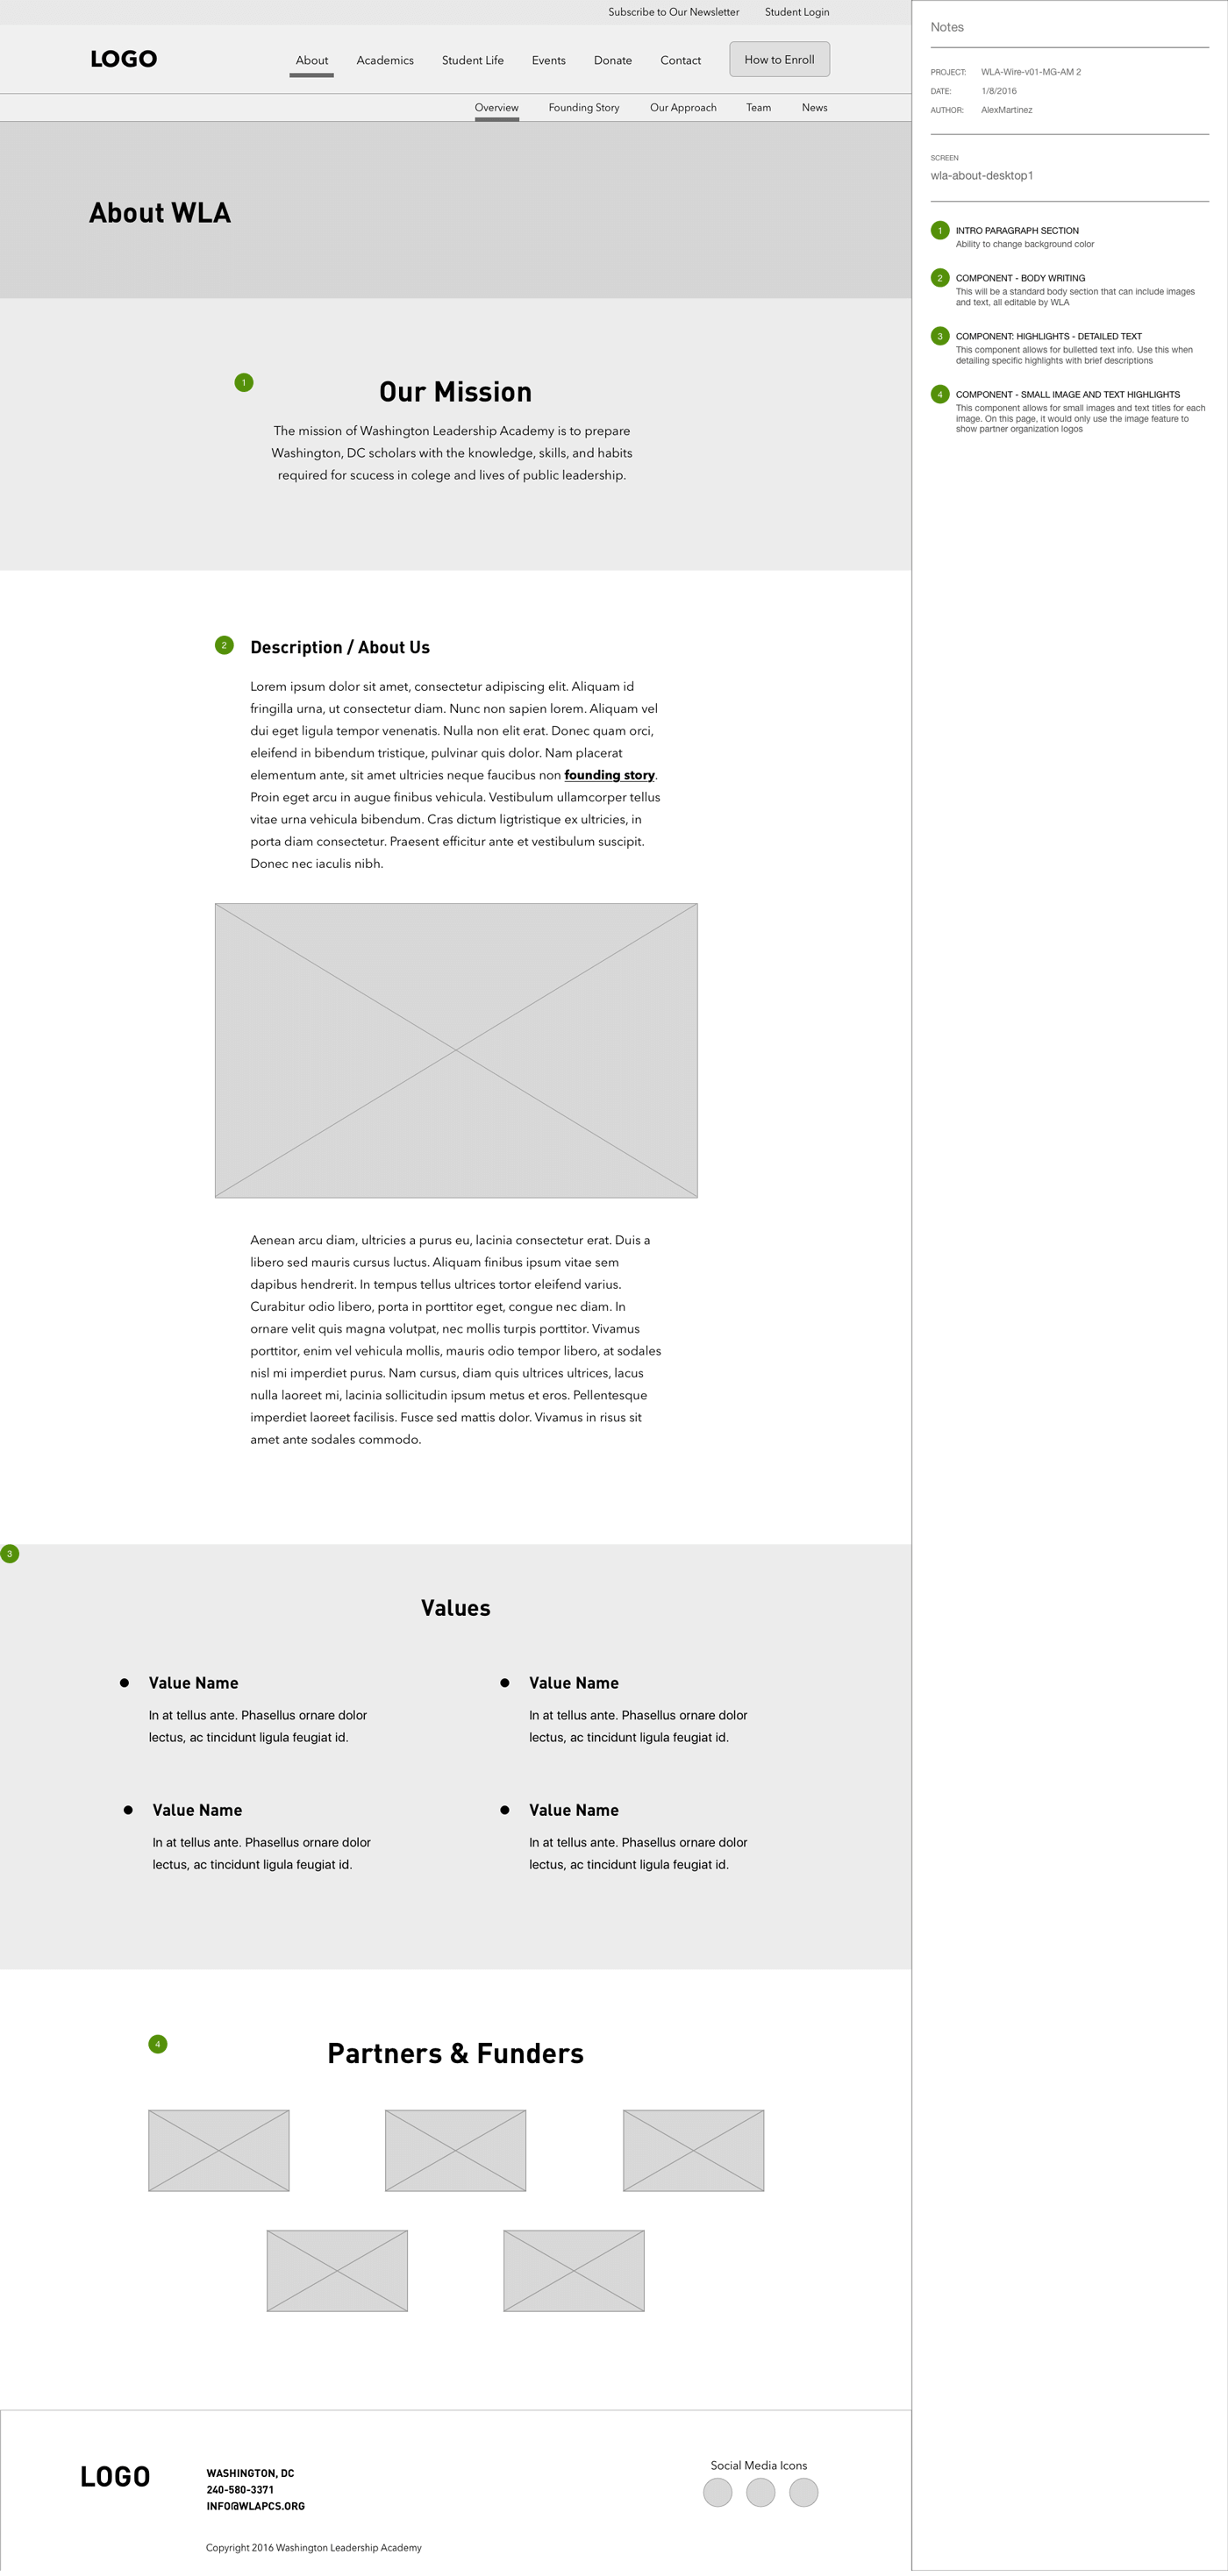 Wireframe of WLA's About Page